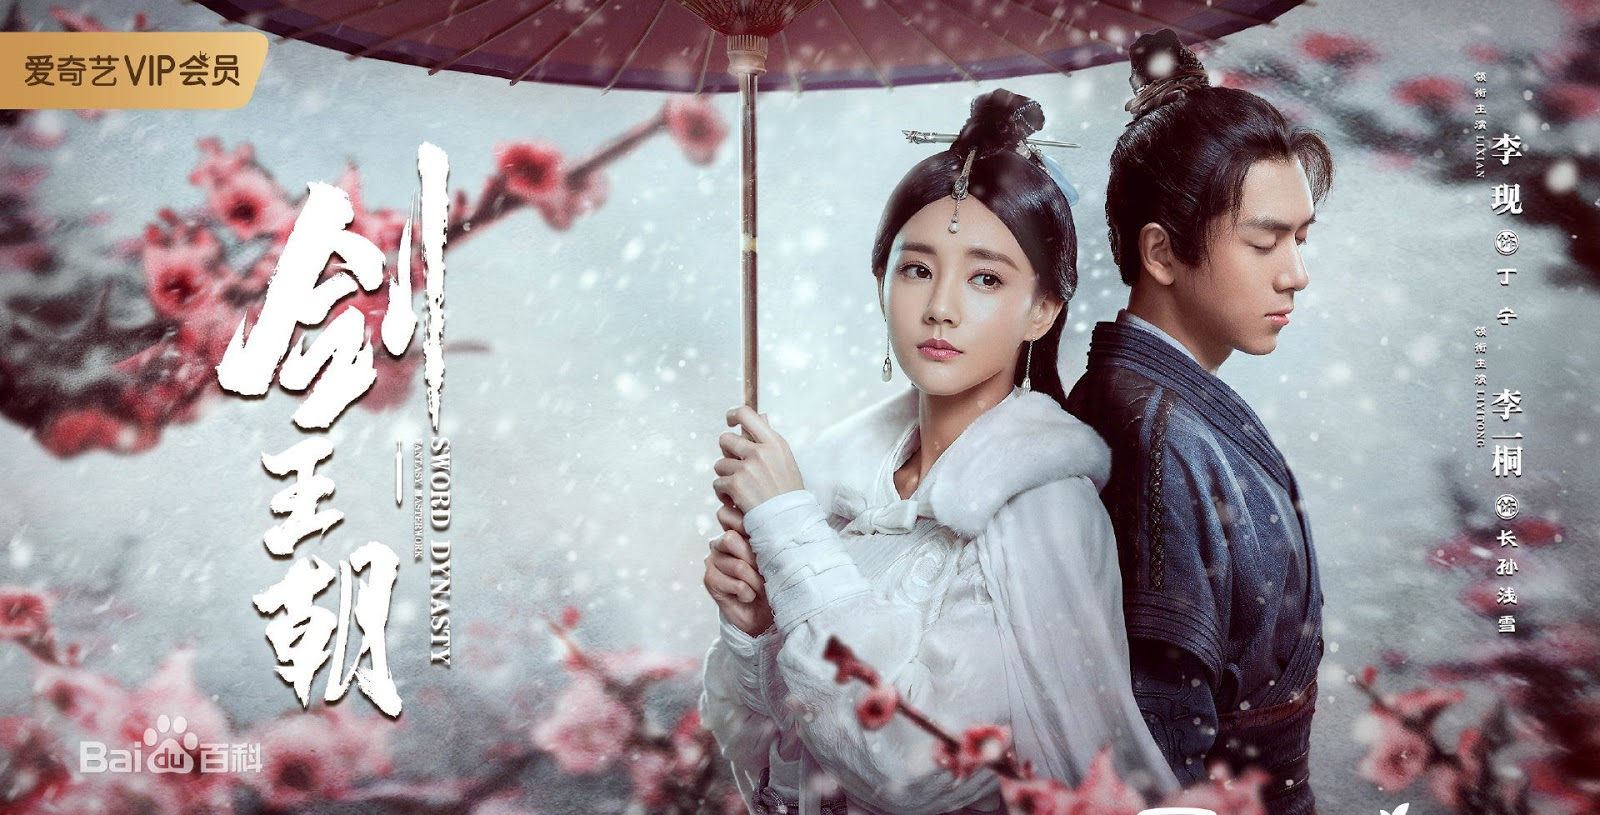 Li Yitong And Her Upcoming Dramas With Swoon